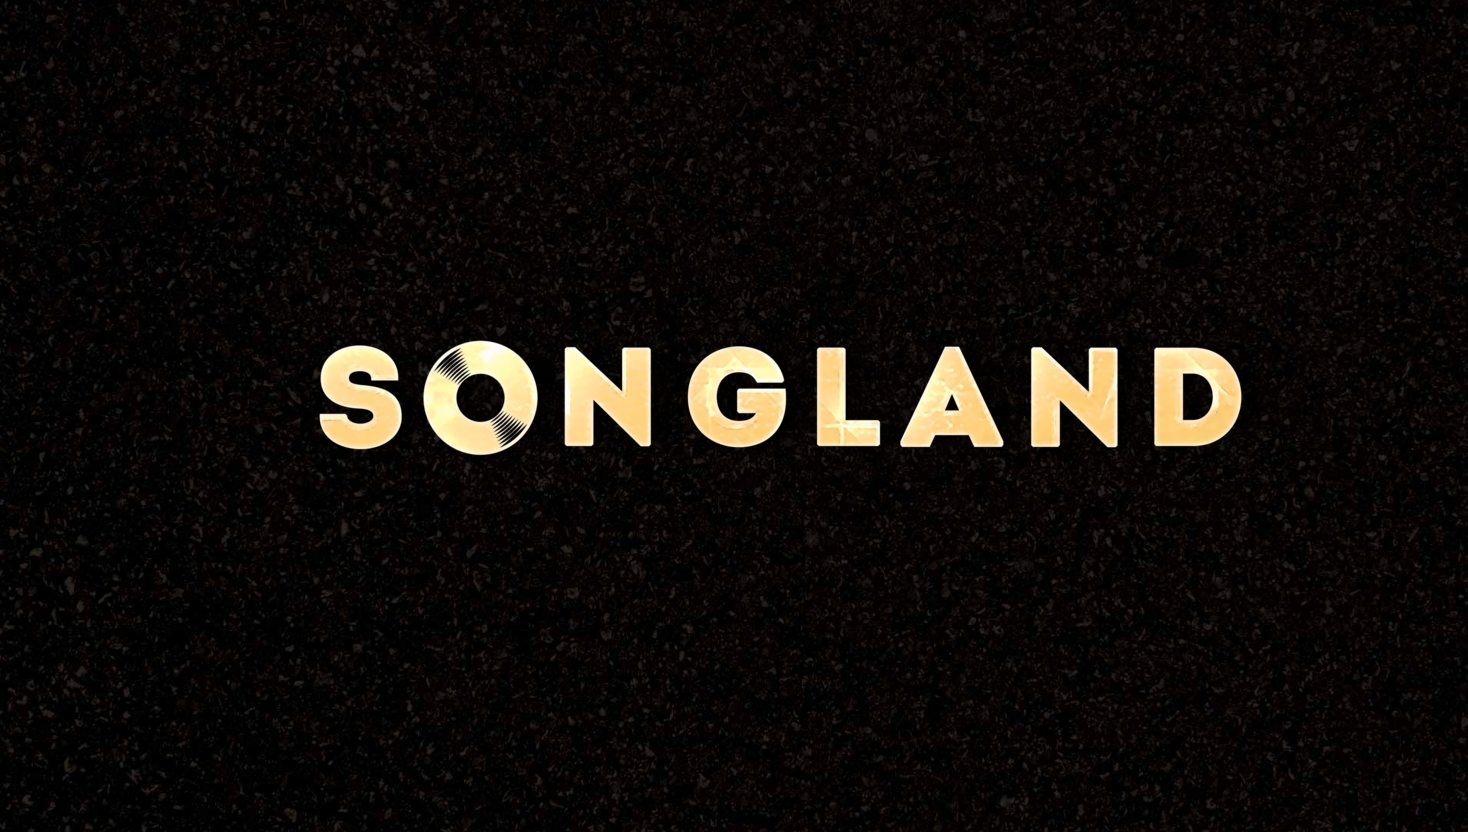 Dave Stewart's new show, Songland, is open for songwriters submissions now